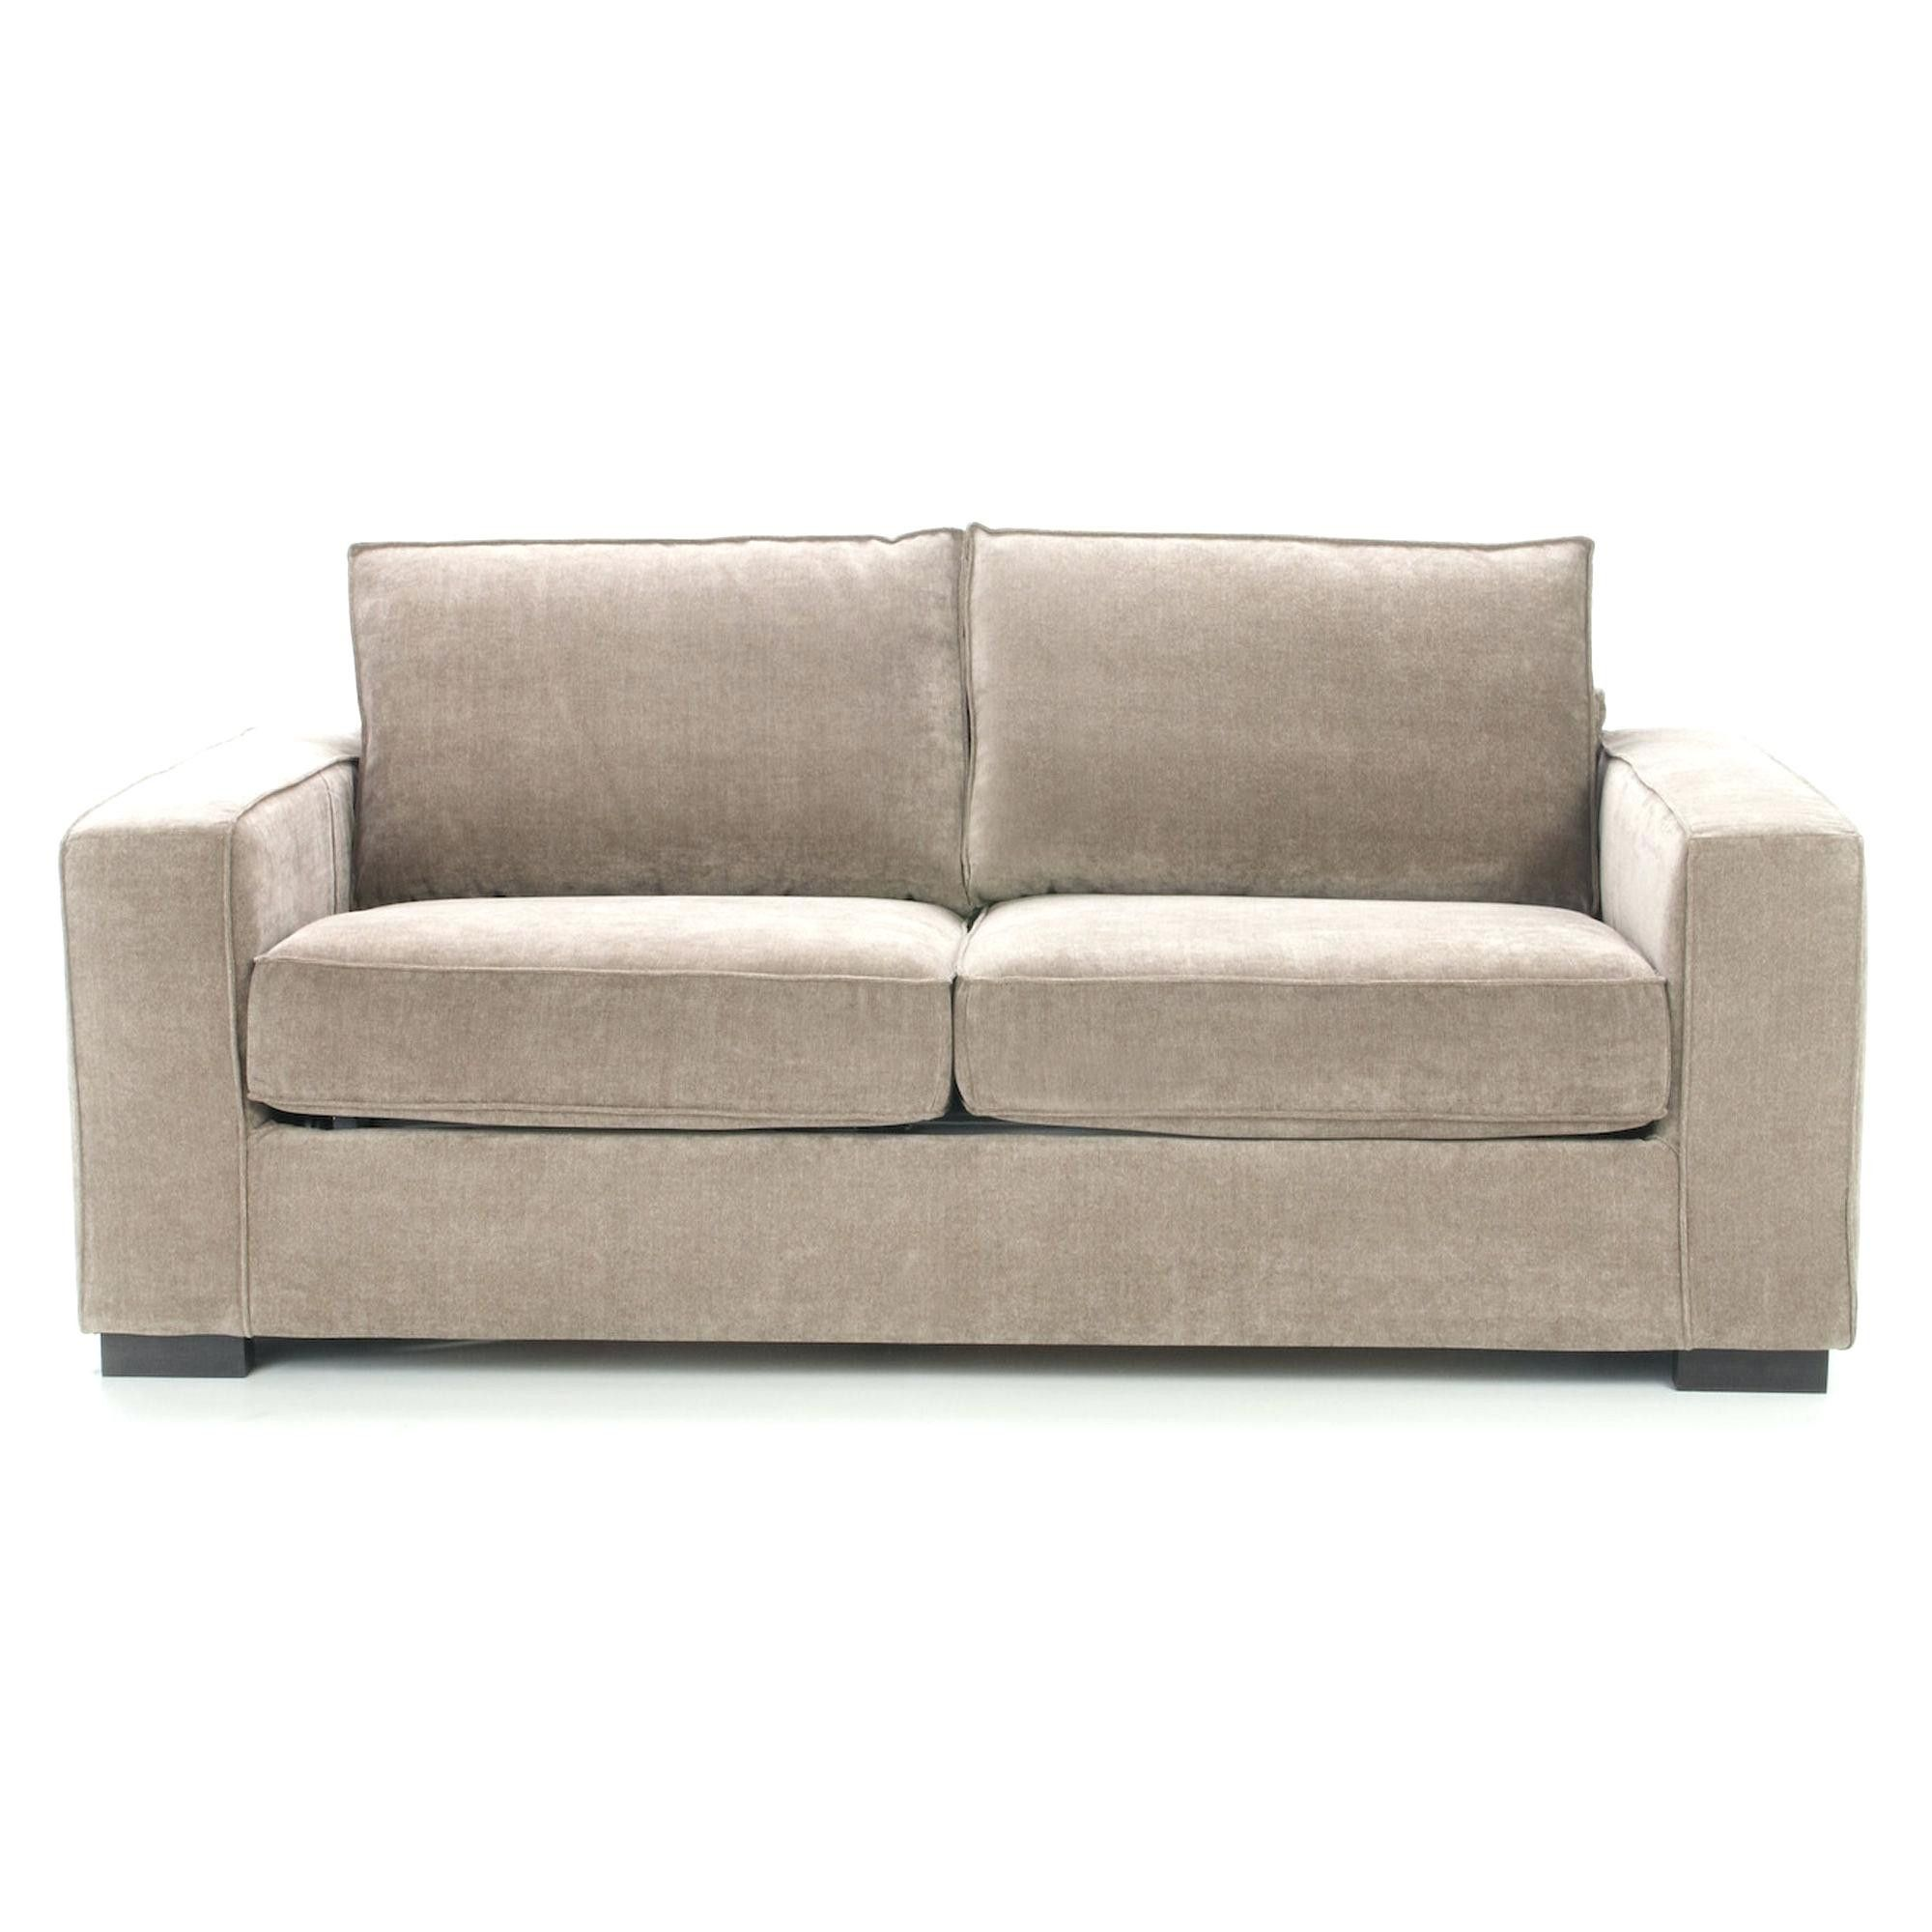 Canap California Alinea 2 Places Avec Alinea Canape Lit Alinea Canape Convertible Awesome California Idees Et Canapes Et Fauteuils Canapac Convertible 2 P Sofa S